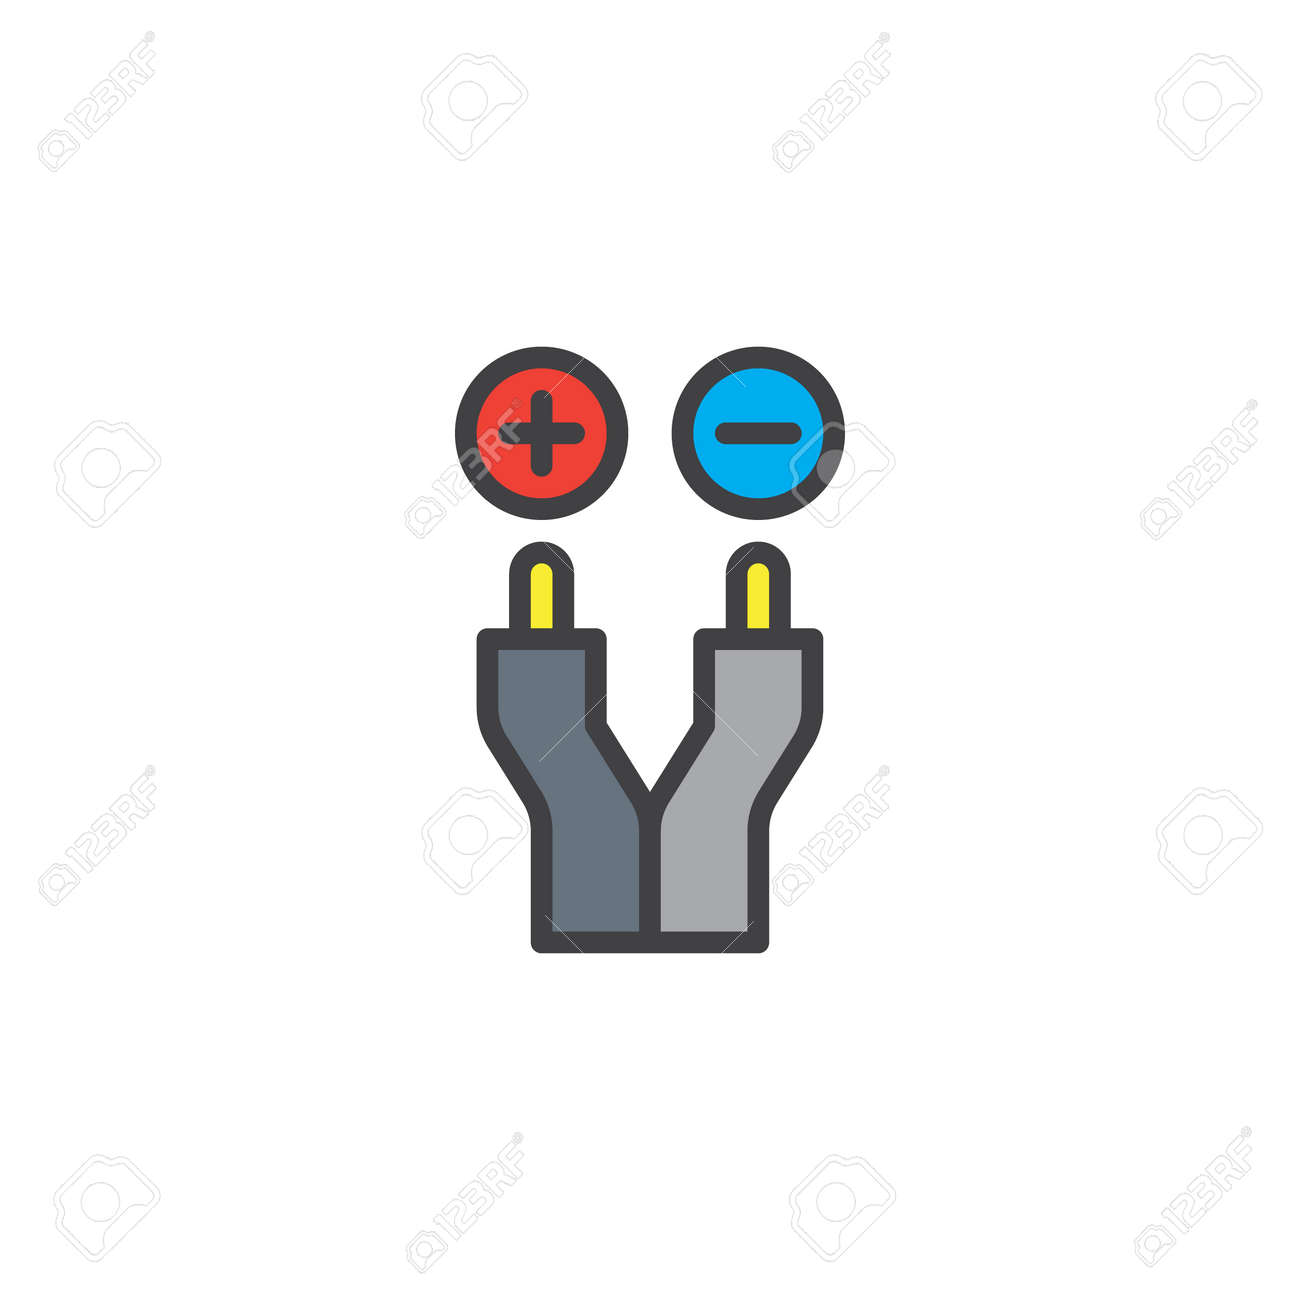 Electric Wire Filled Outline Icon Vector Illustration Royalty Free ...